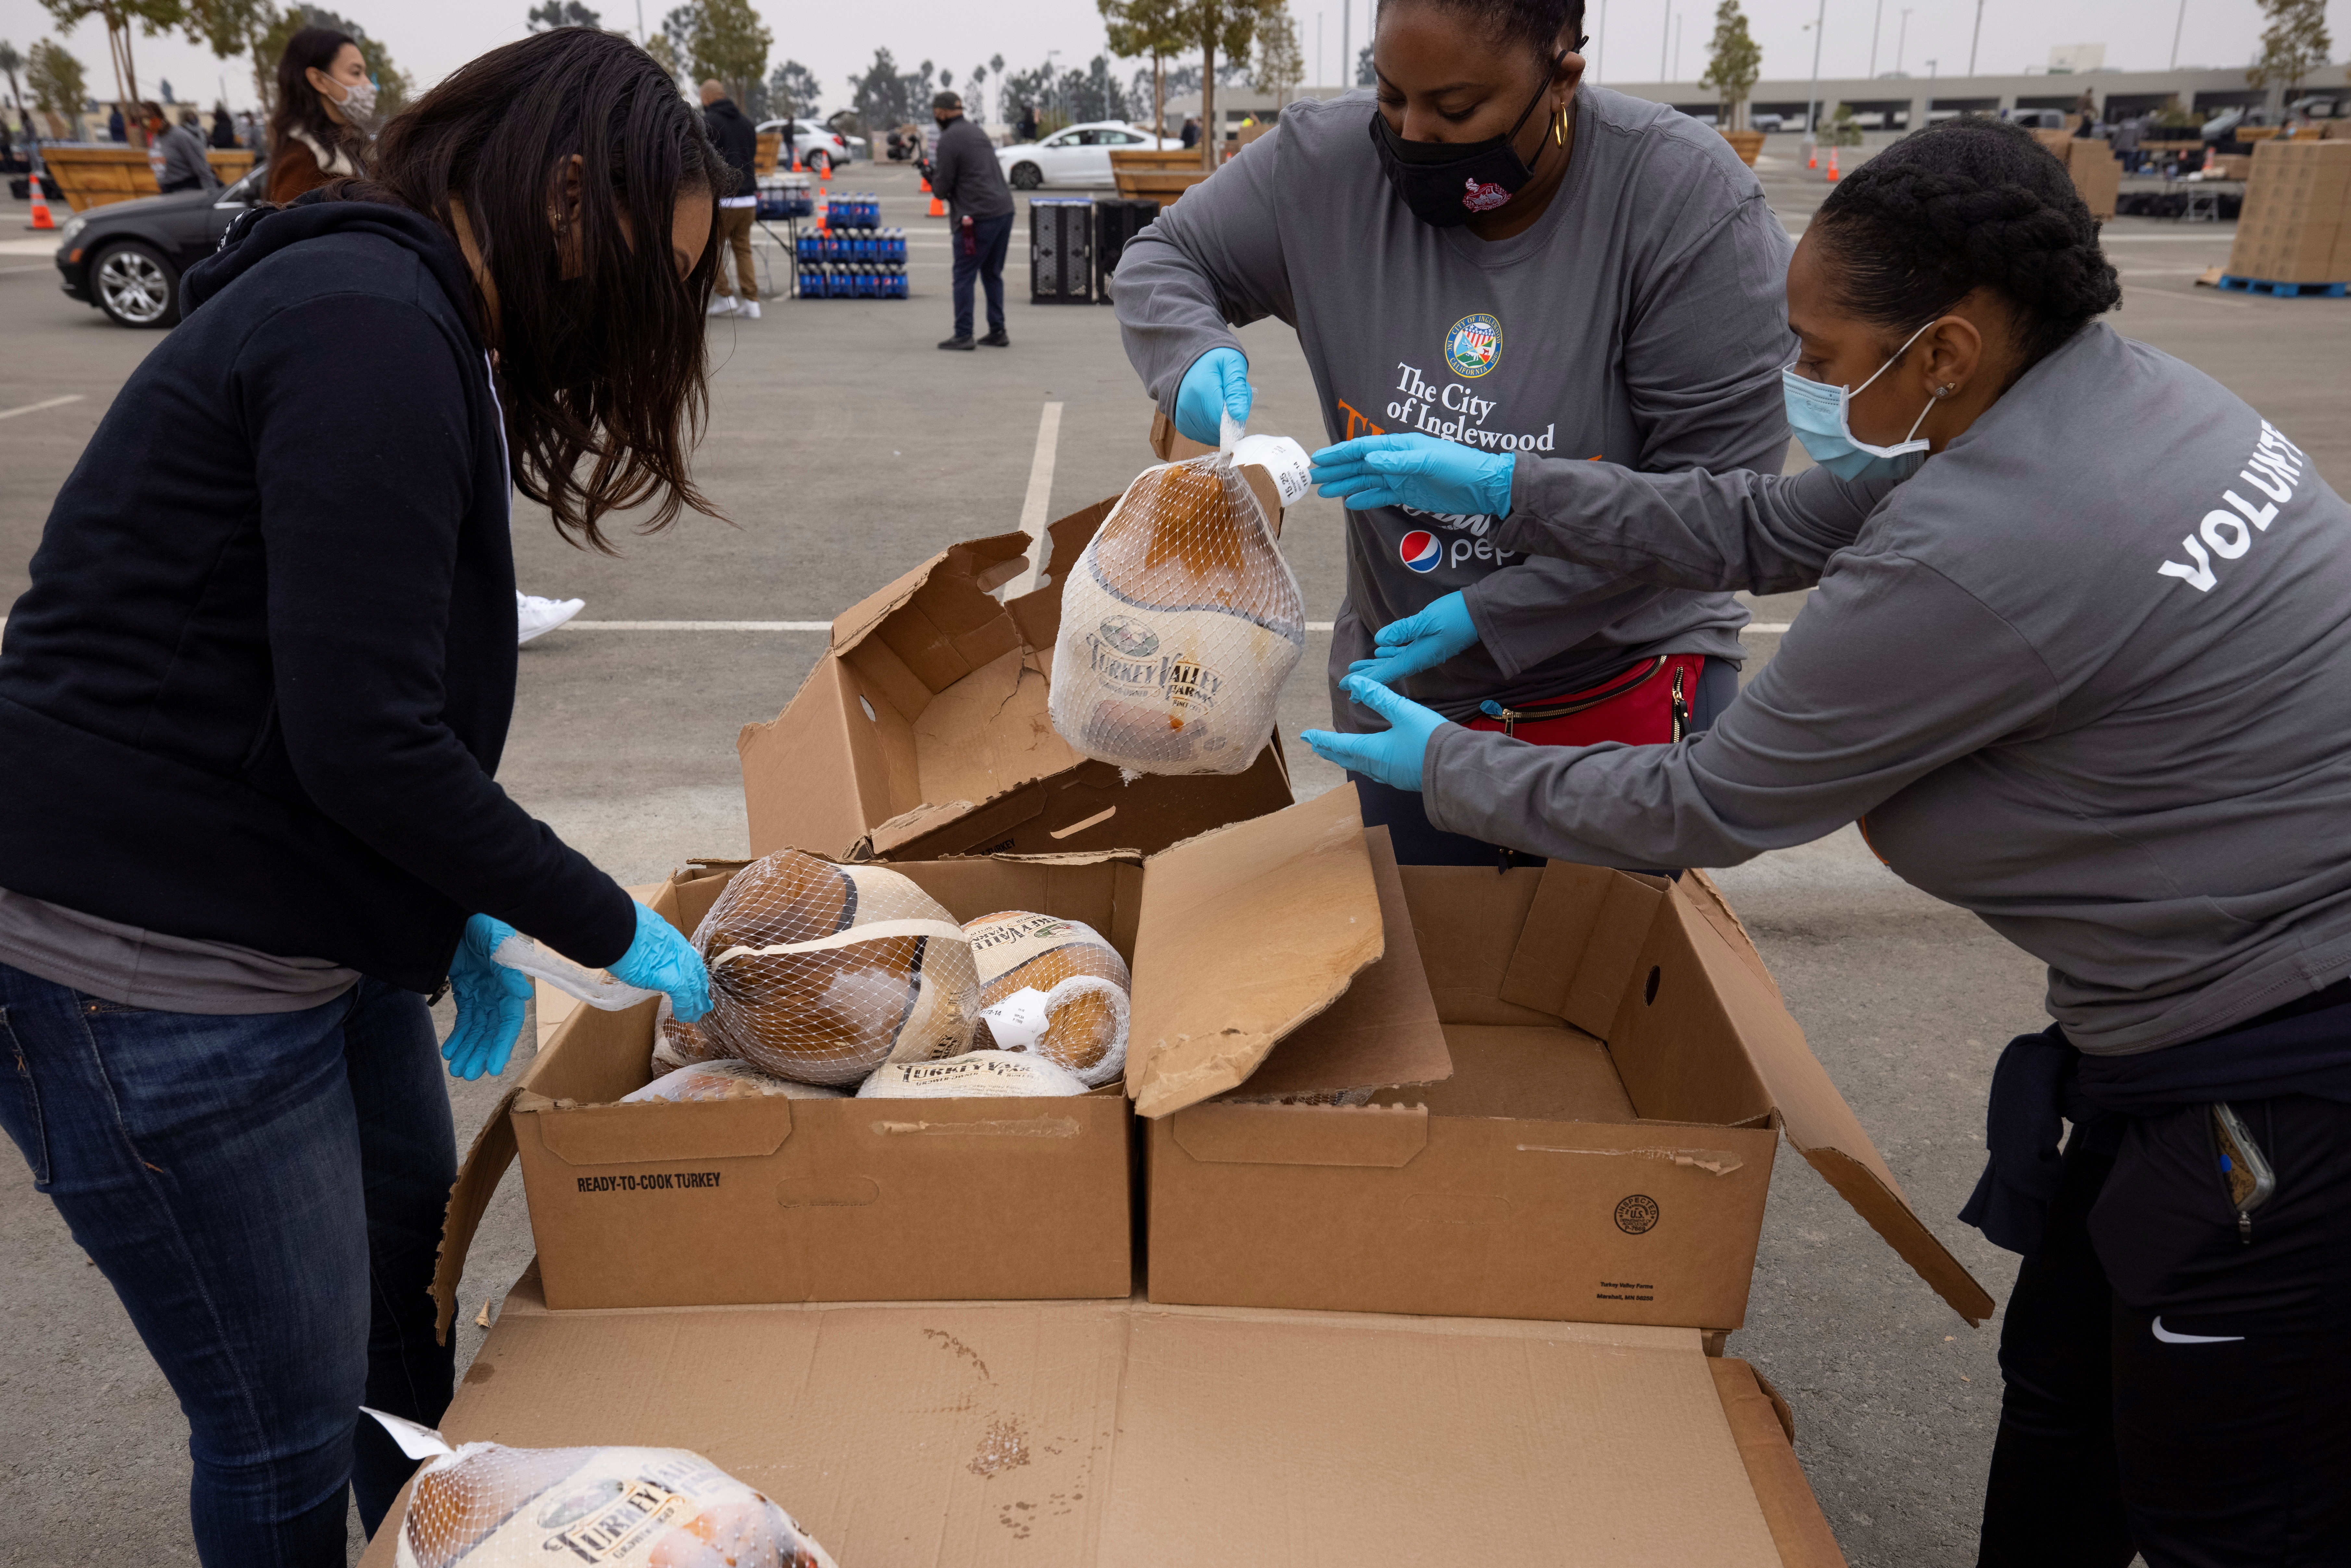 Volunteers help at the City of Inglewood's annual Thanksgiving Turkey Giveaway during the COVID-19 outbreak, in California, U.S., November 23, 2020.      REUTERS/Mike Blake - RC299K9AJOJJ